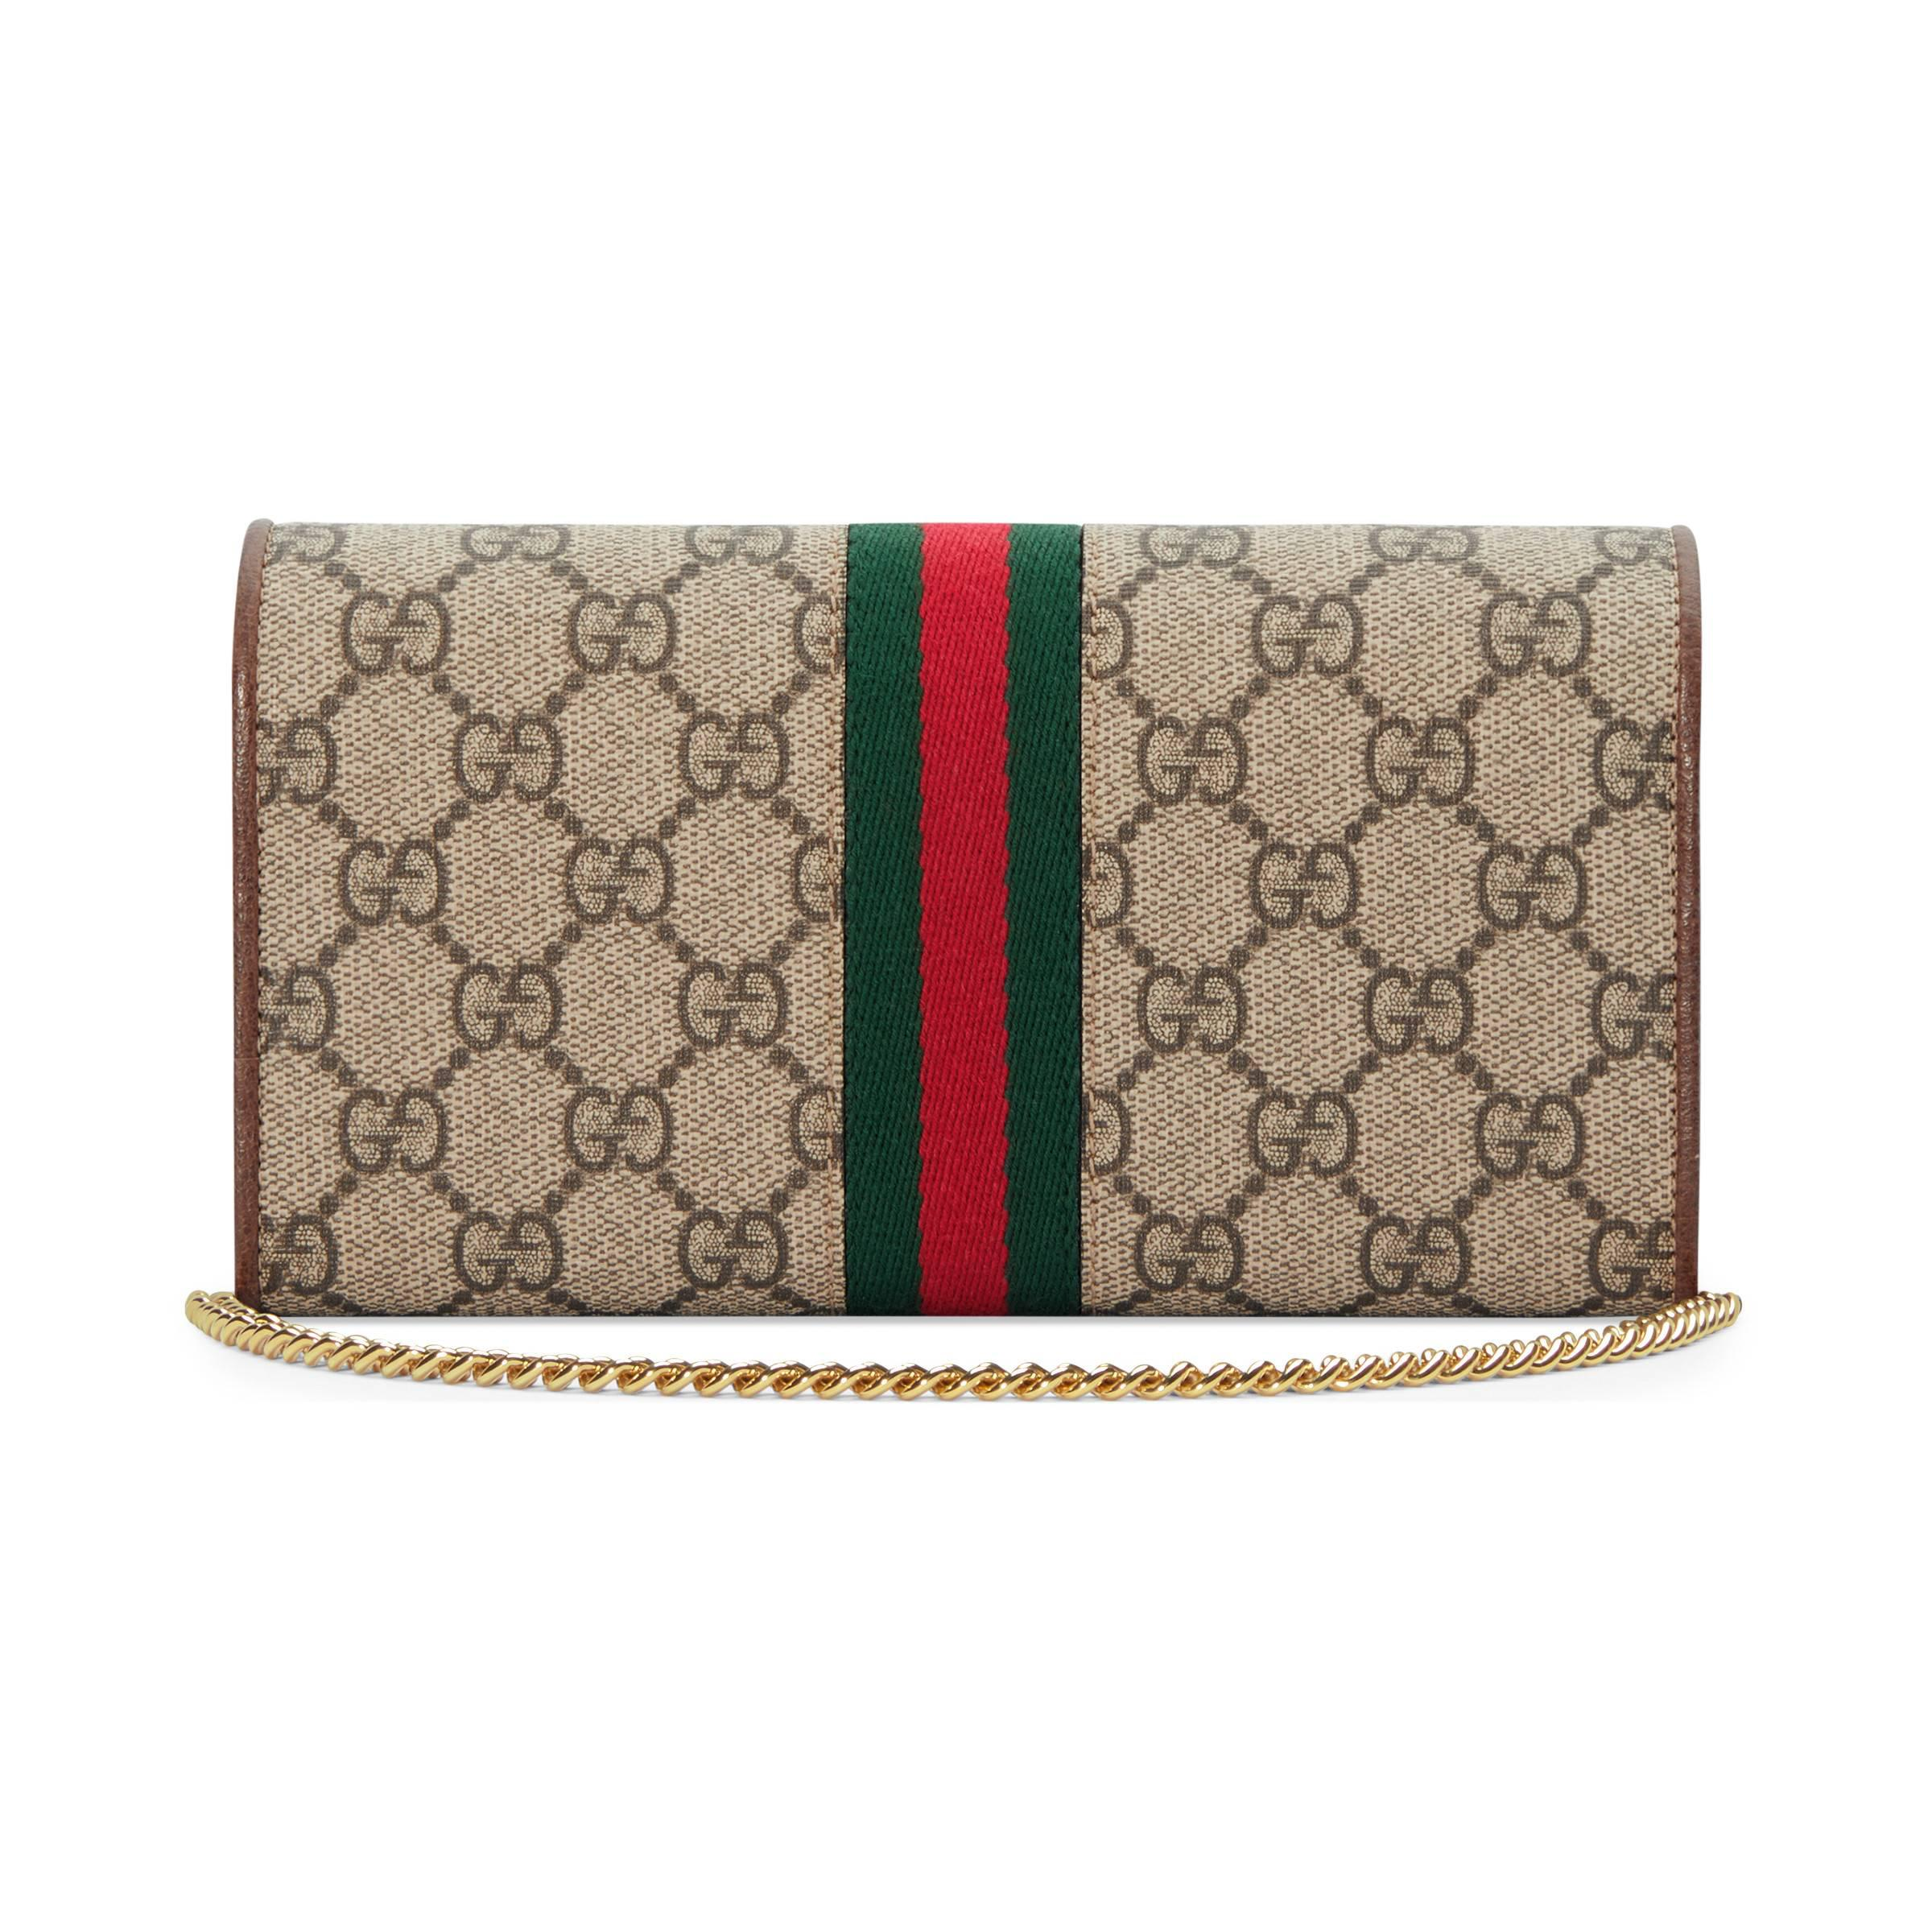 2013feeb6fded Gucci Ophidia GG Brieftasche mit Kette in Natur - Lyst